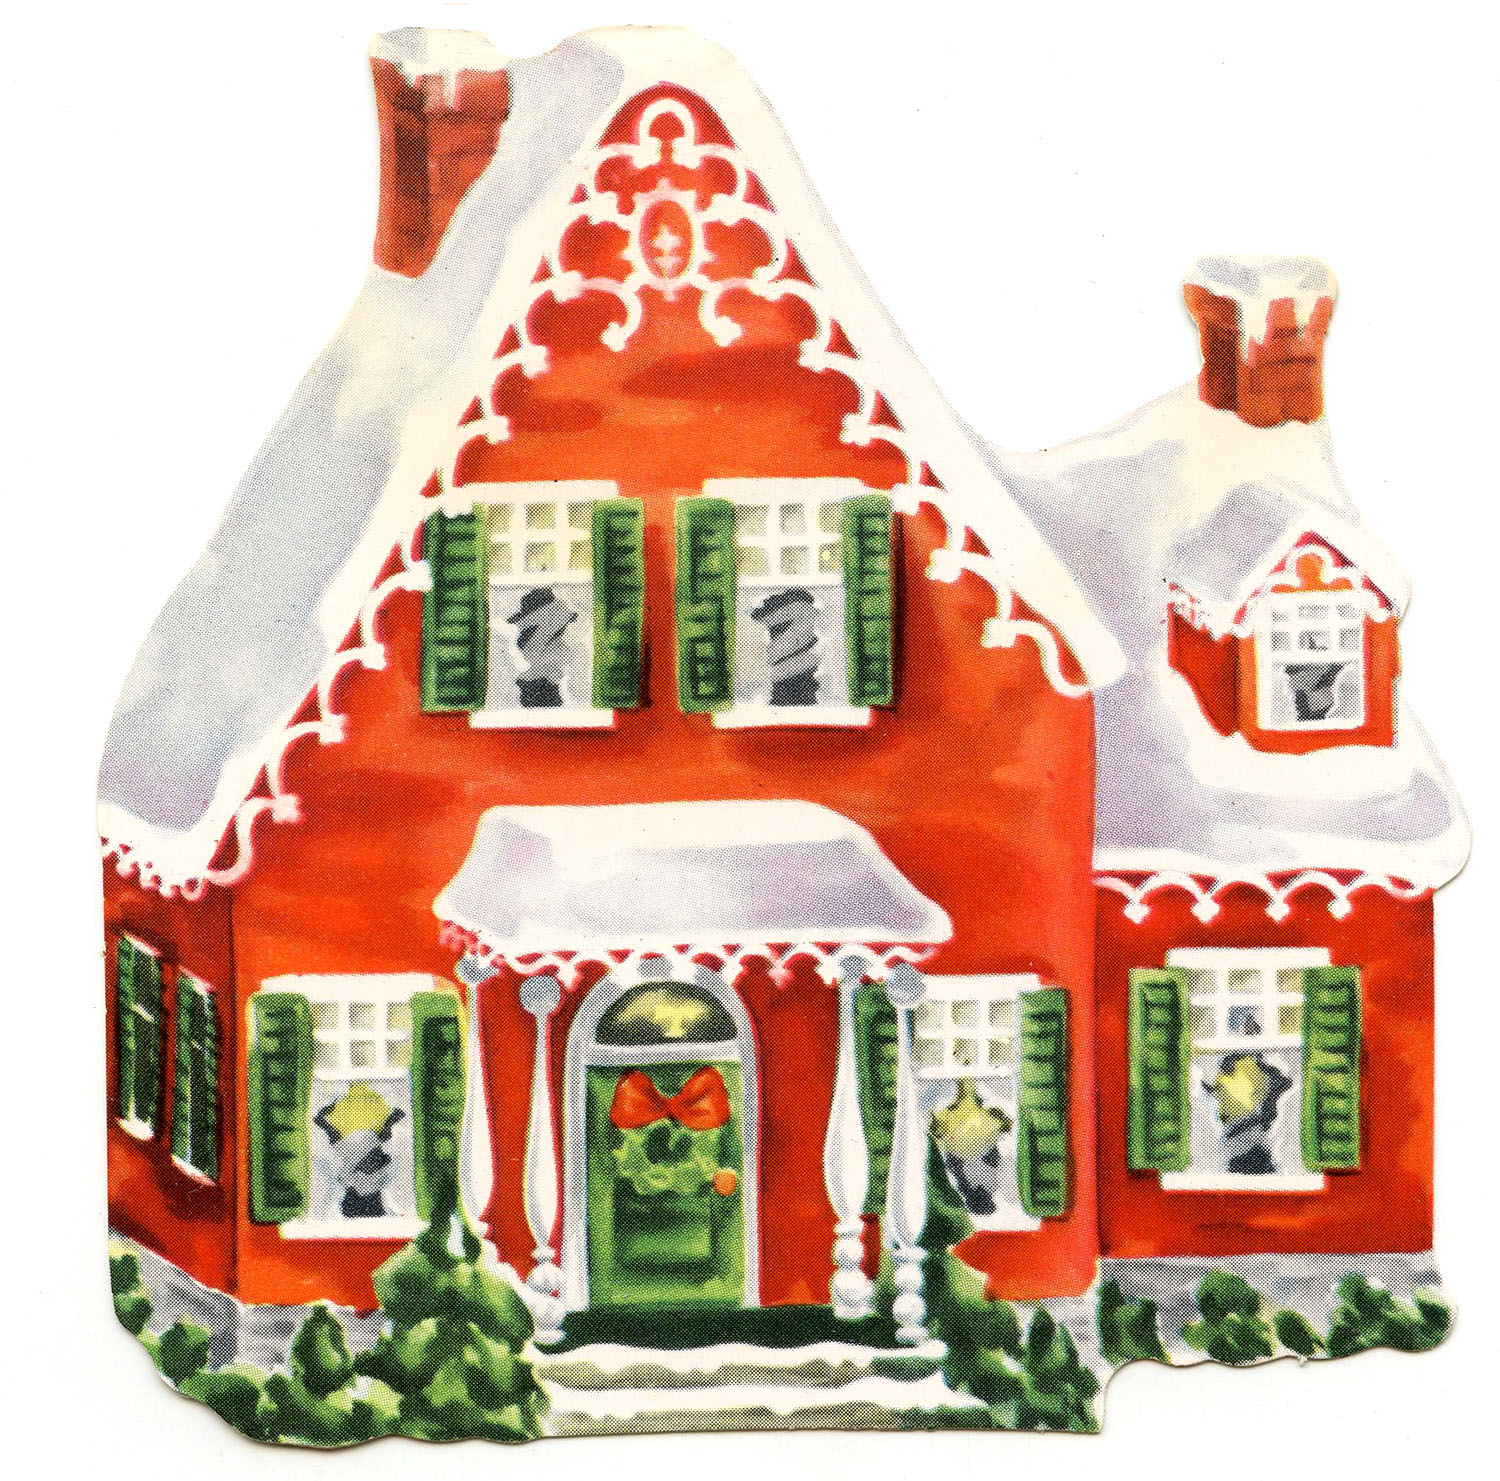 Cottage clipart cottage house. Retro clip art darling